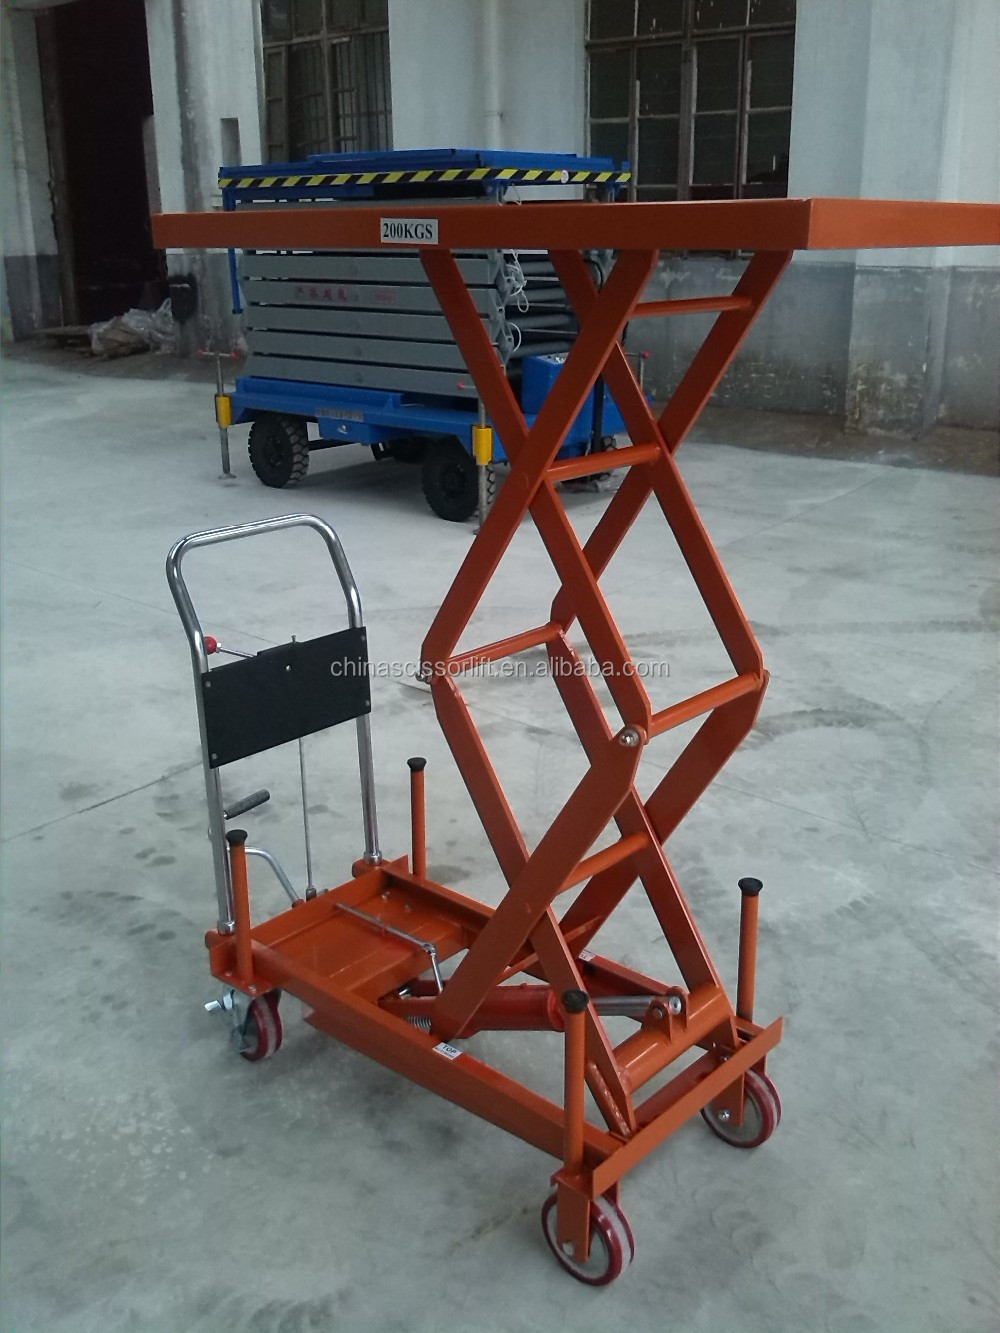 Small Hydraulic Lift Table : Portable electric truck hydraulic scissor lift table small